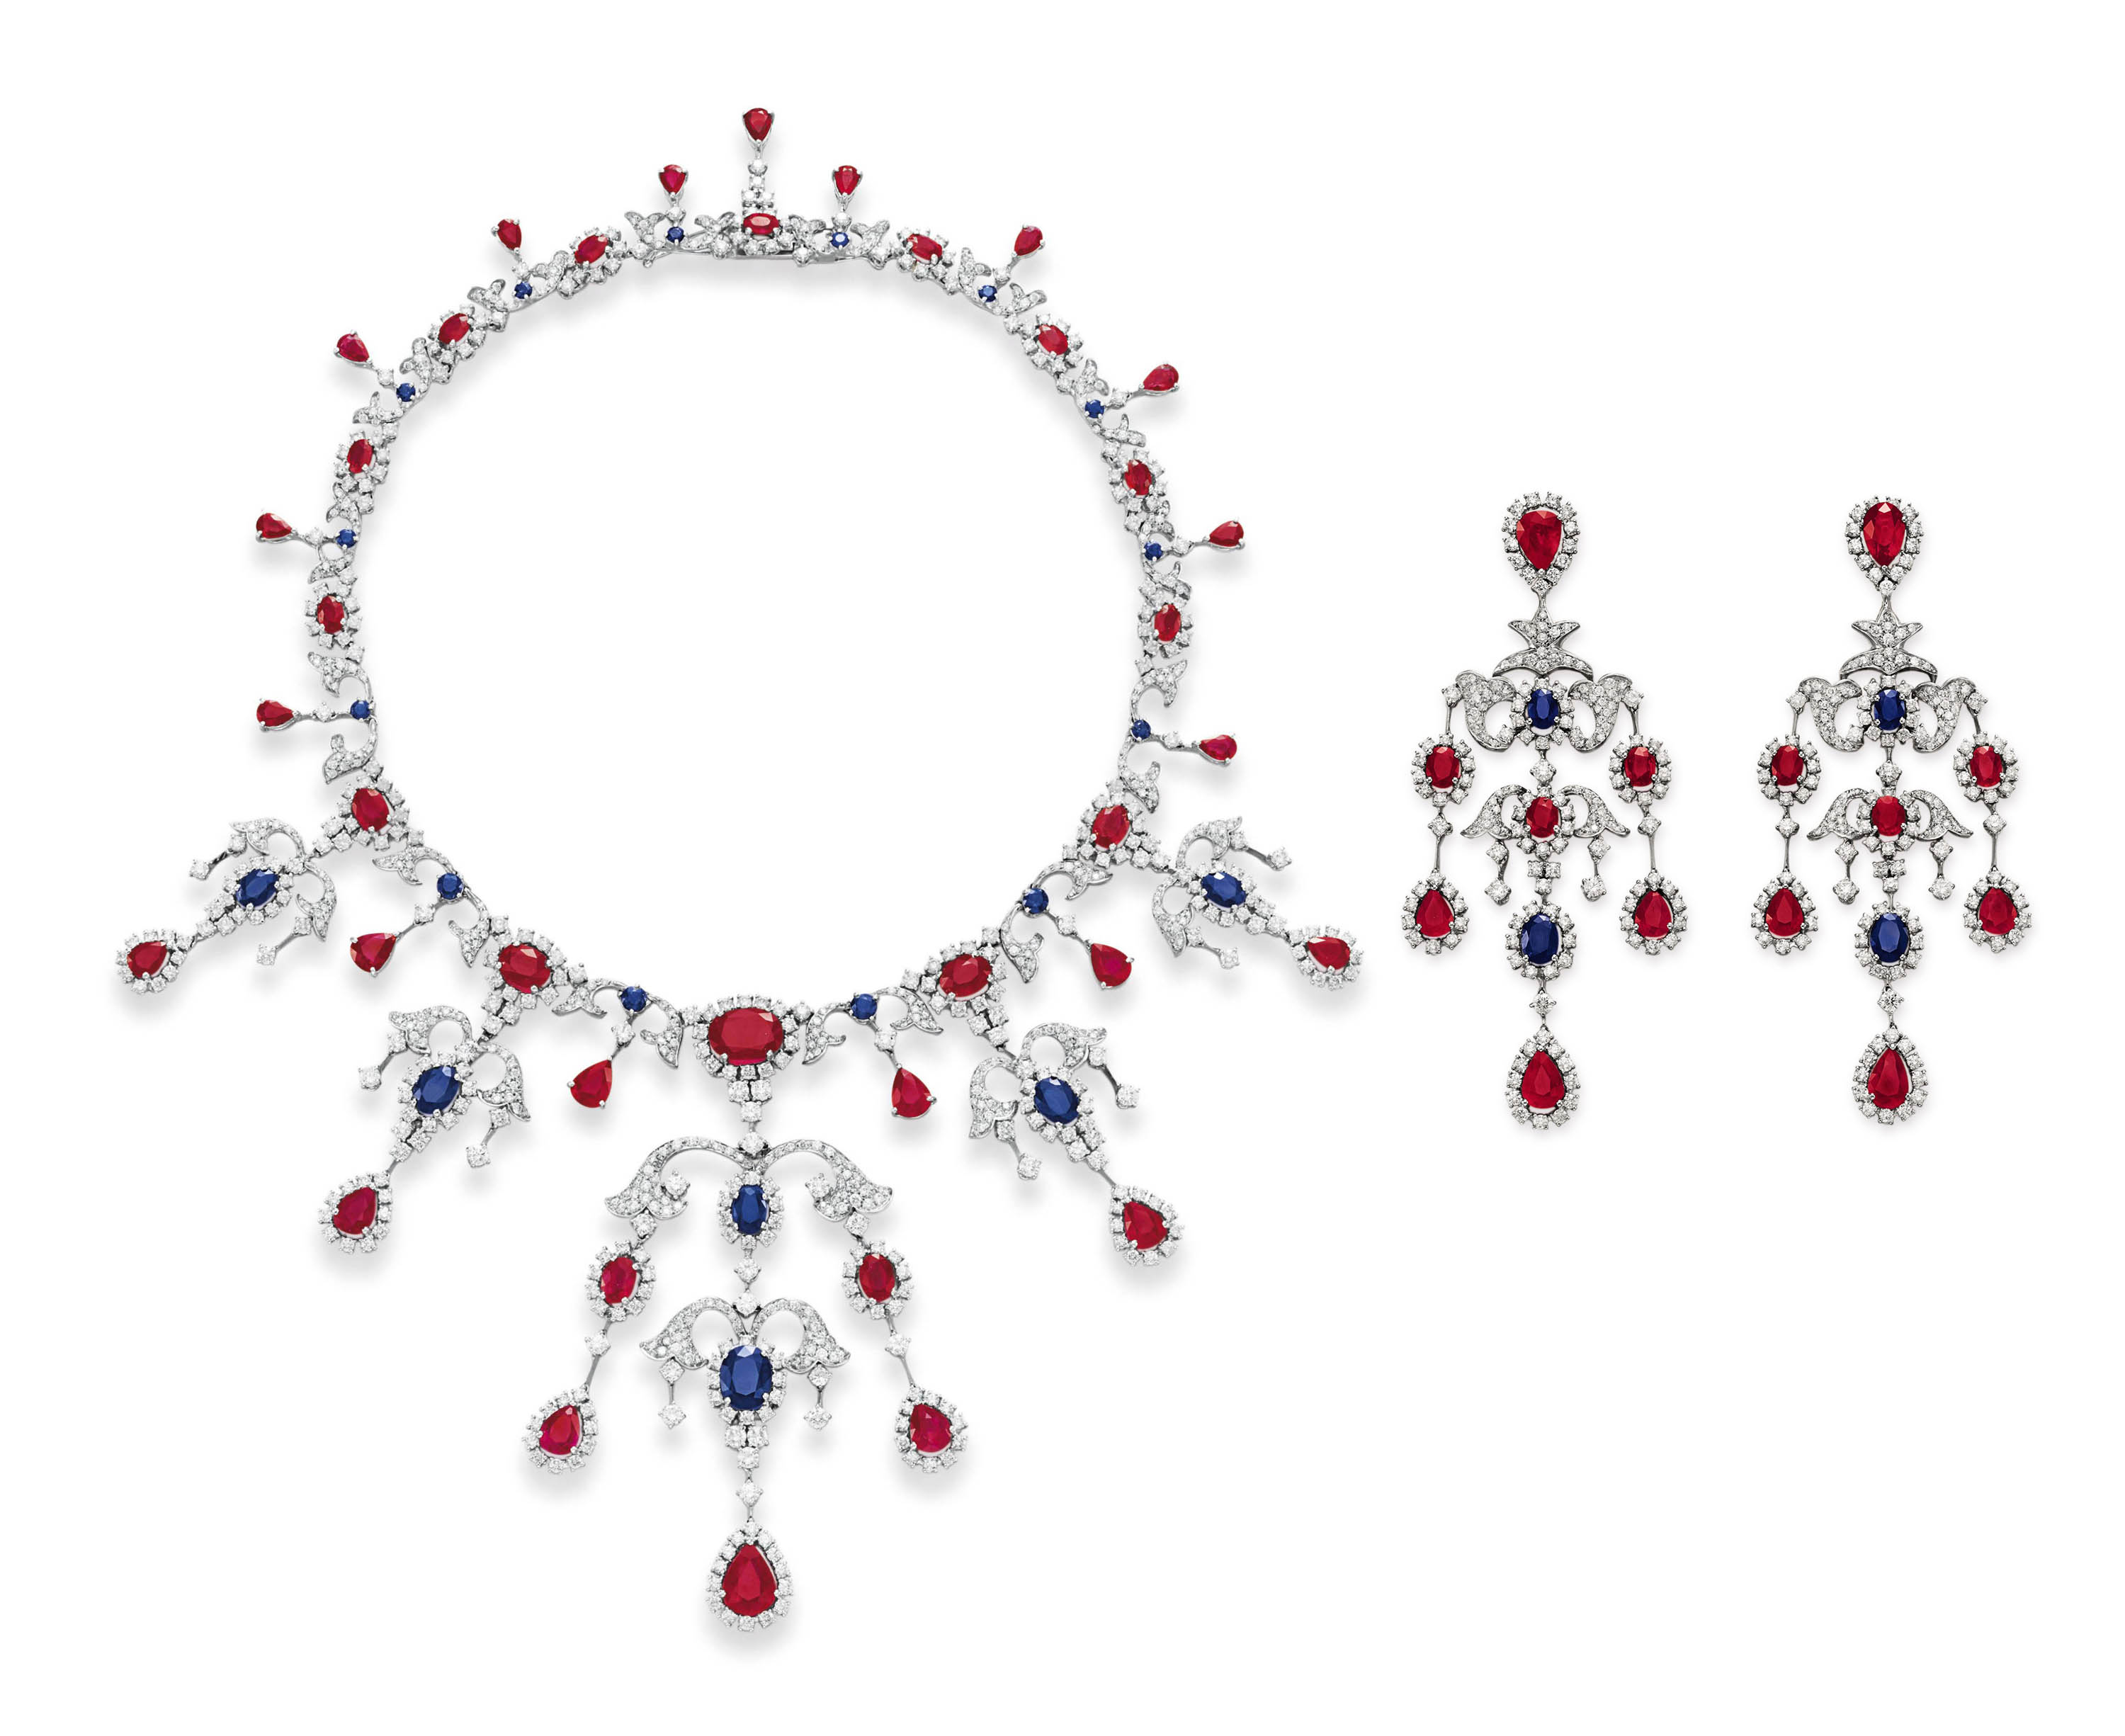 A SET OF RUBY, SAPPHIRE AND DIAMOND JEWELRY, BY HOUSE OF TAYLOR